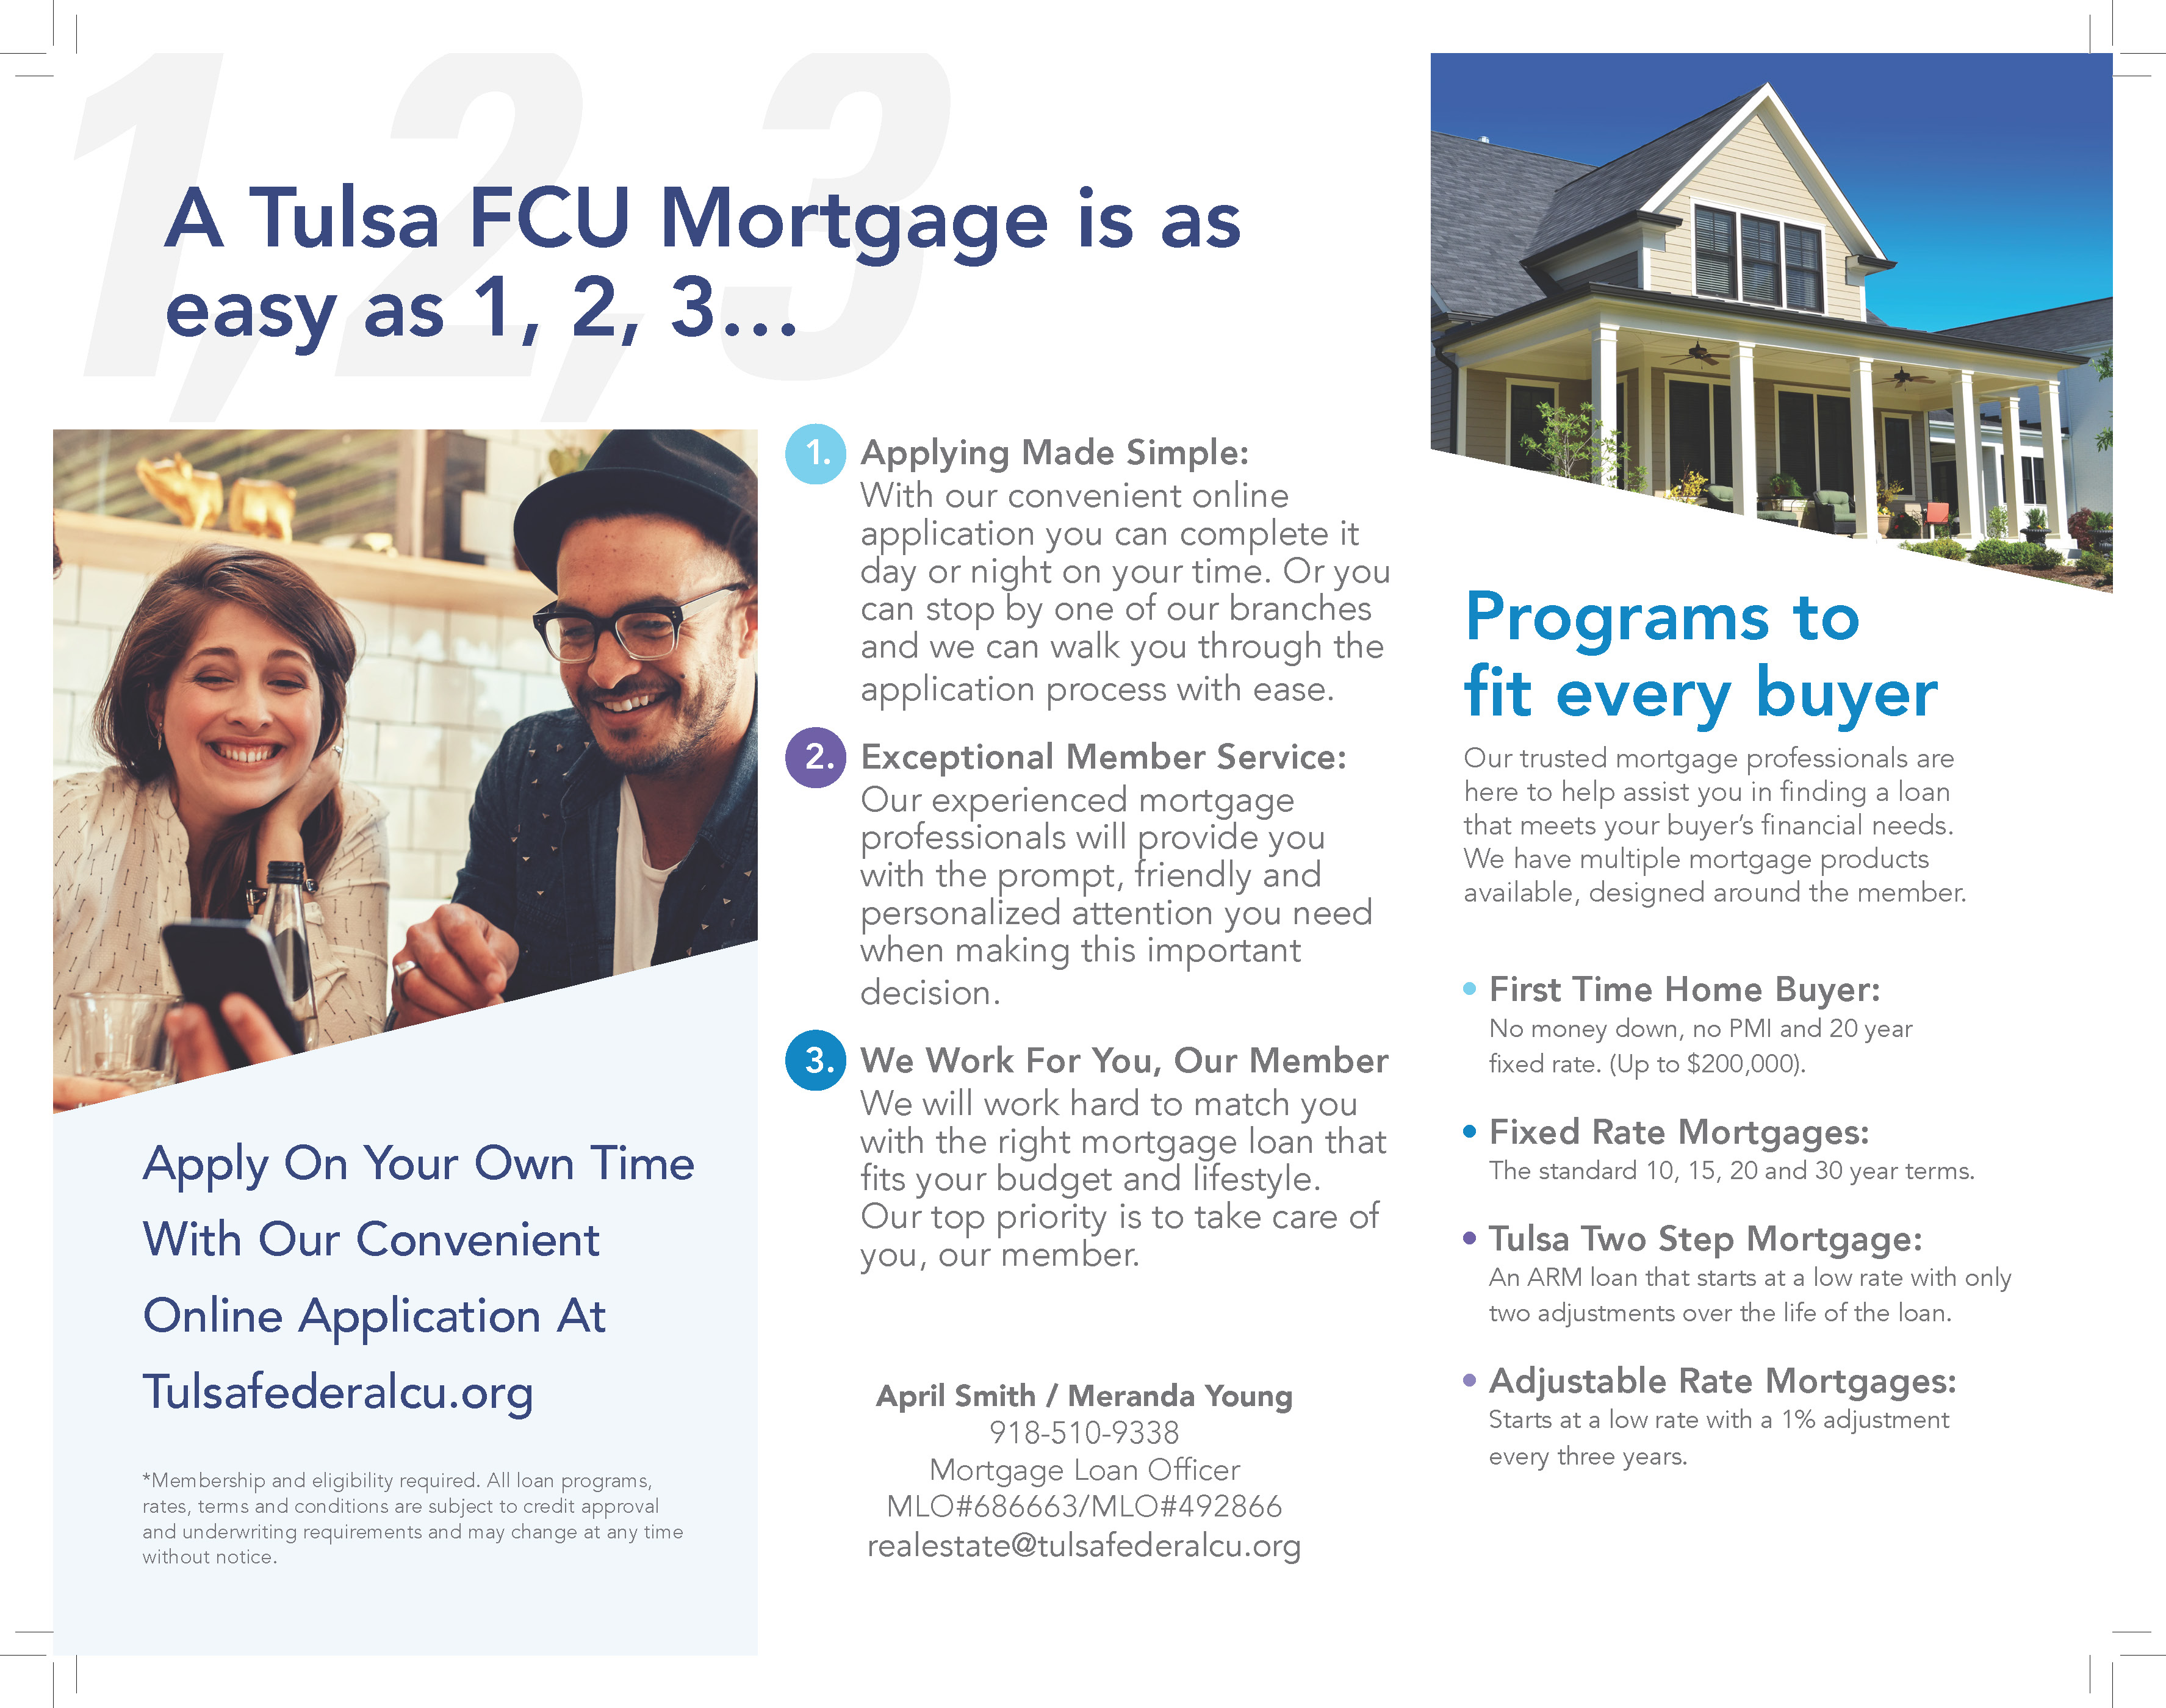 tfcu-0238-mortgage-brochure-sept2016-lores_page_2